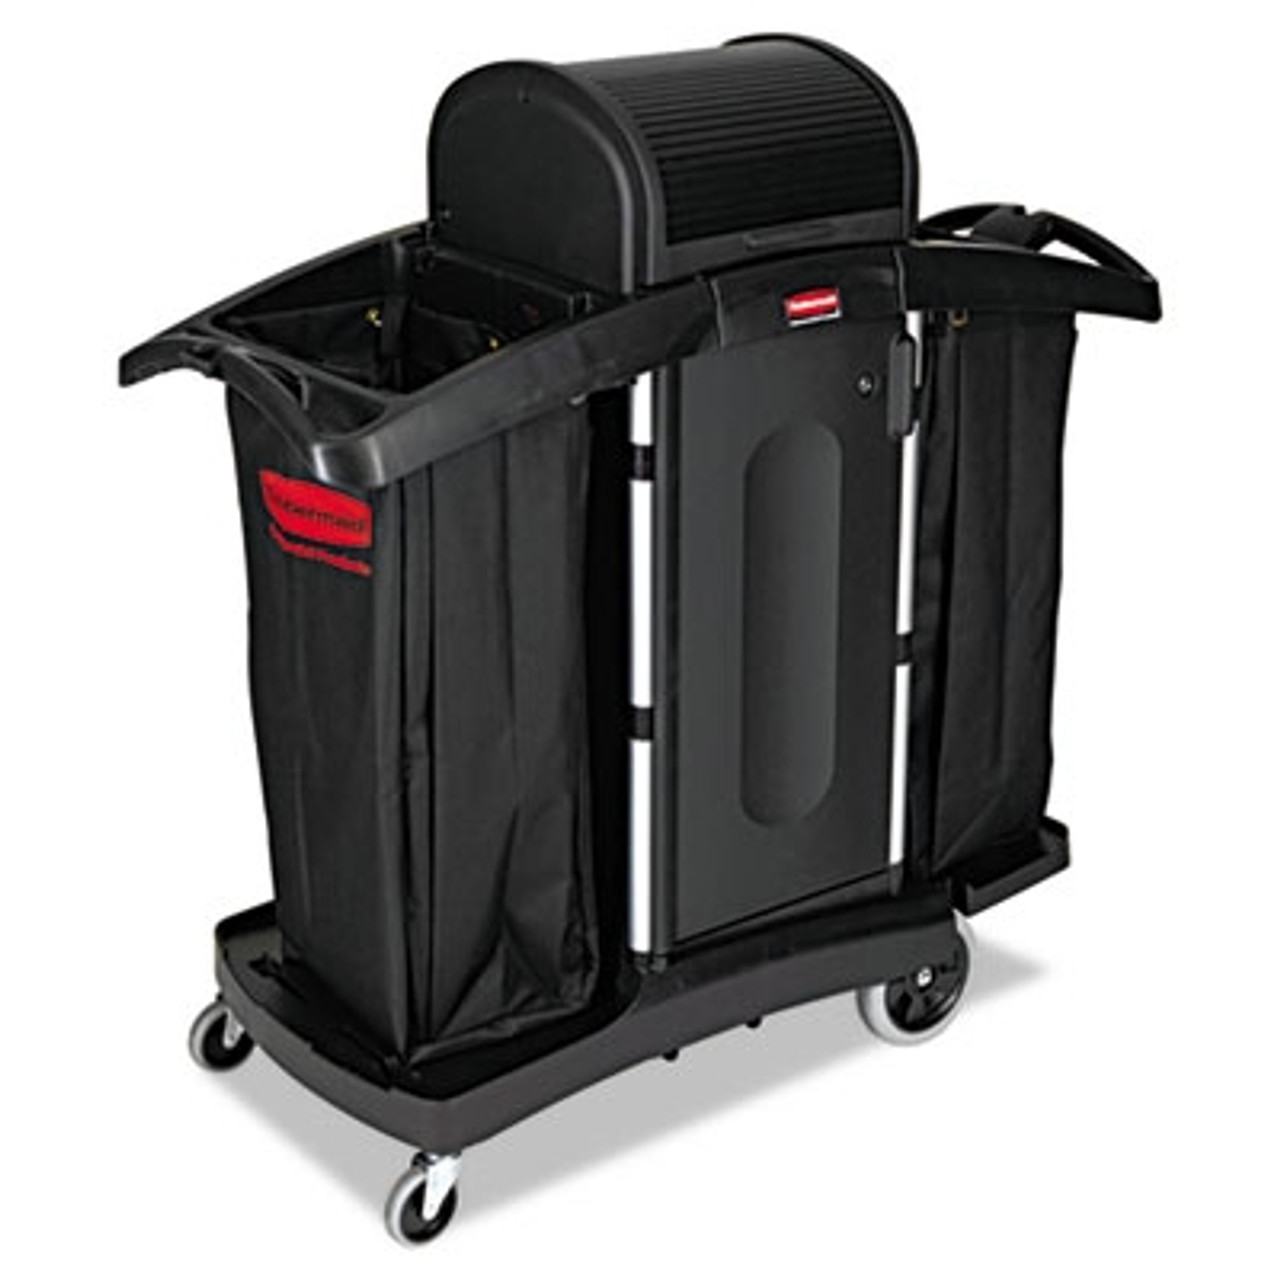 Rubbermaid Commercial High-Security Housekeeping Cart, 2-Shelf, 22w x 51 3/4d x 53 1/2h, BK/SR